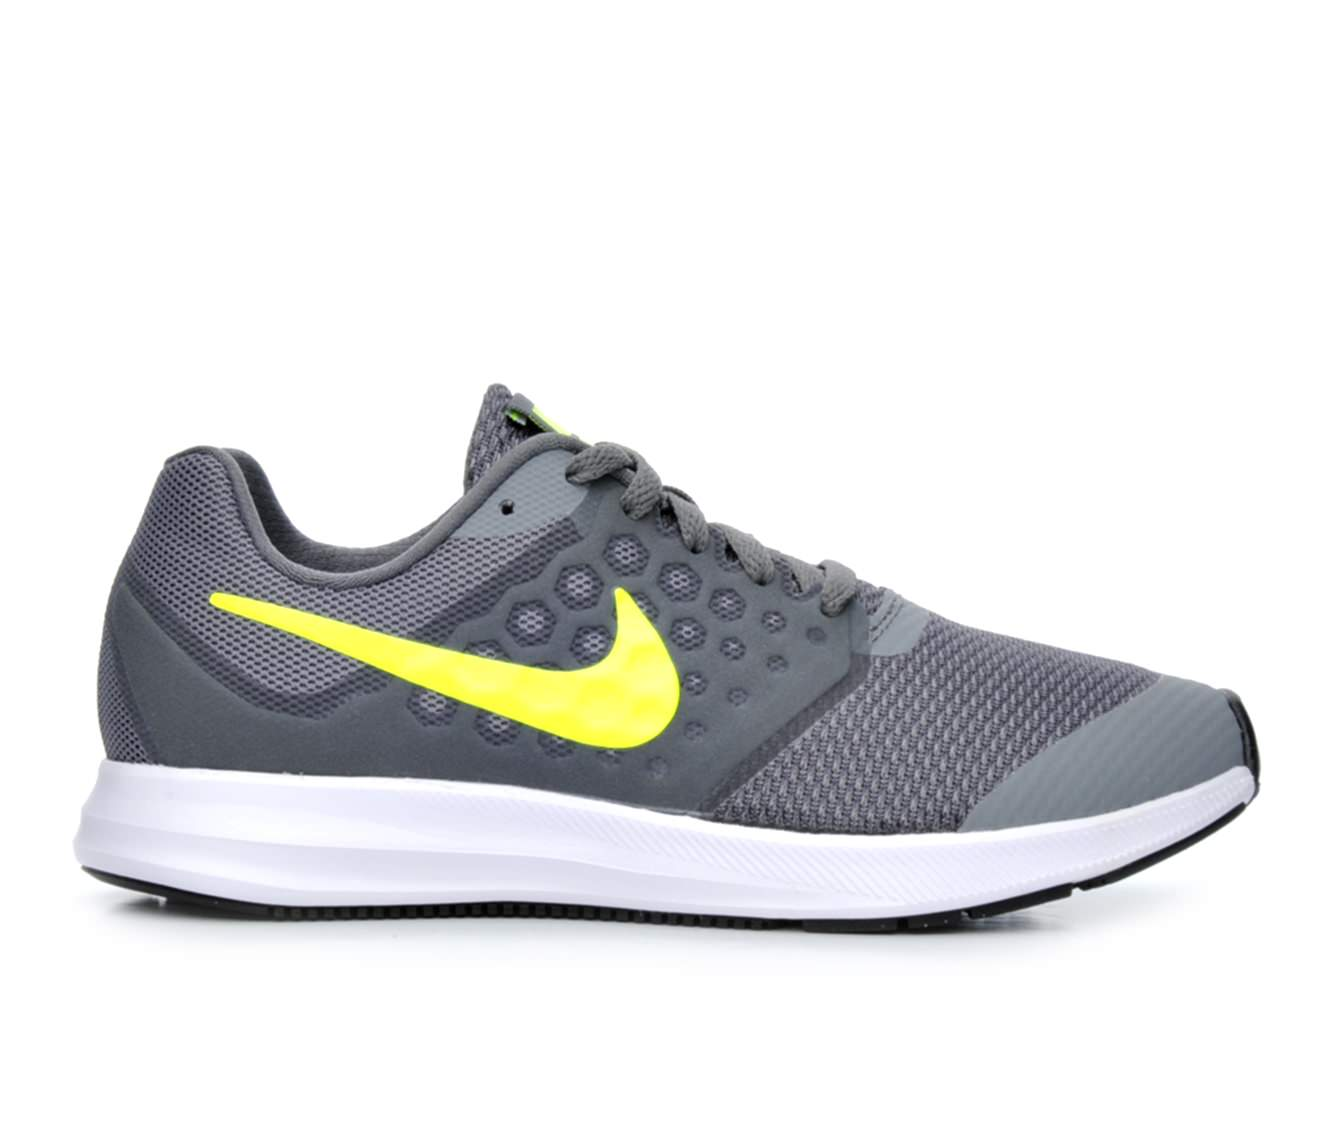 Boys' Nike Downshifter 7 Running Shoes (Grey)